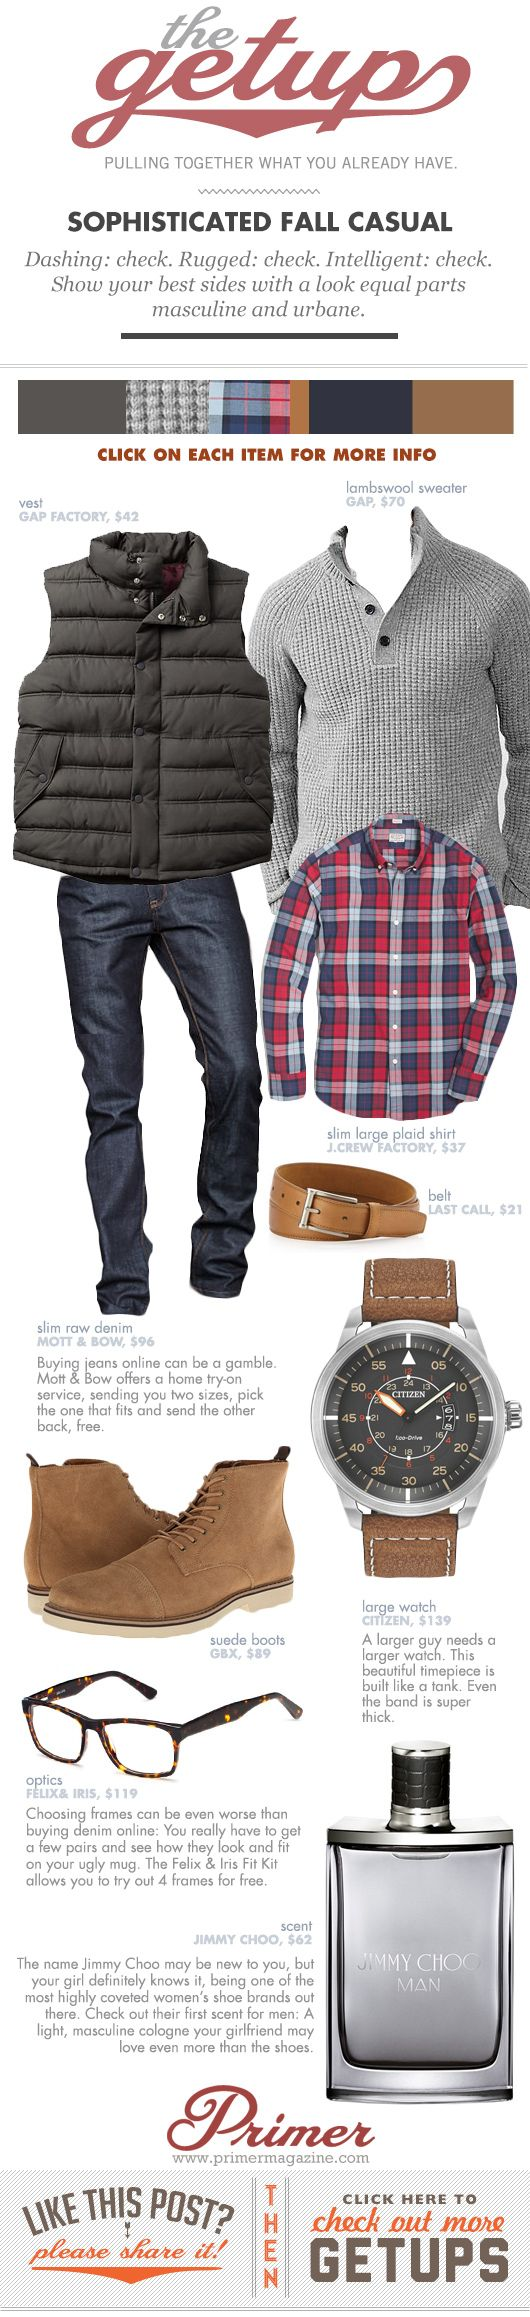 Dashing: check. Rugged: check. Intelligent: check. Show your best sides with a look equal parts masculine and urbane.